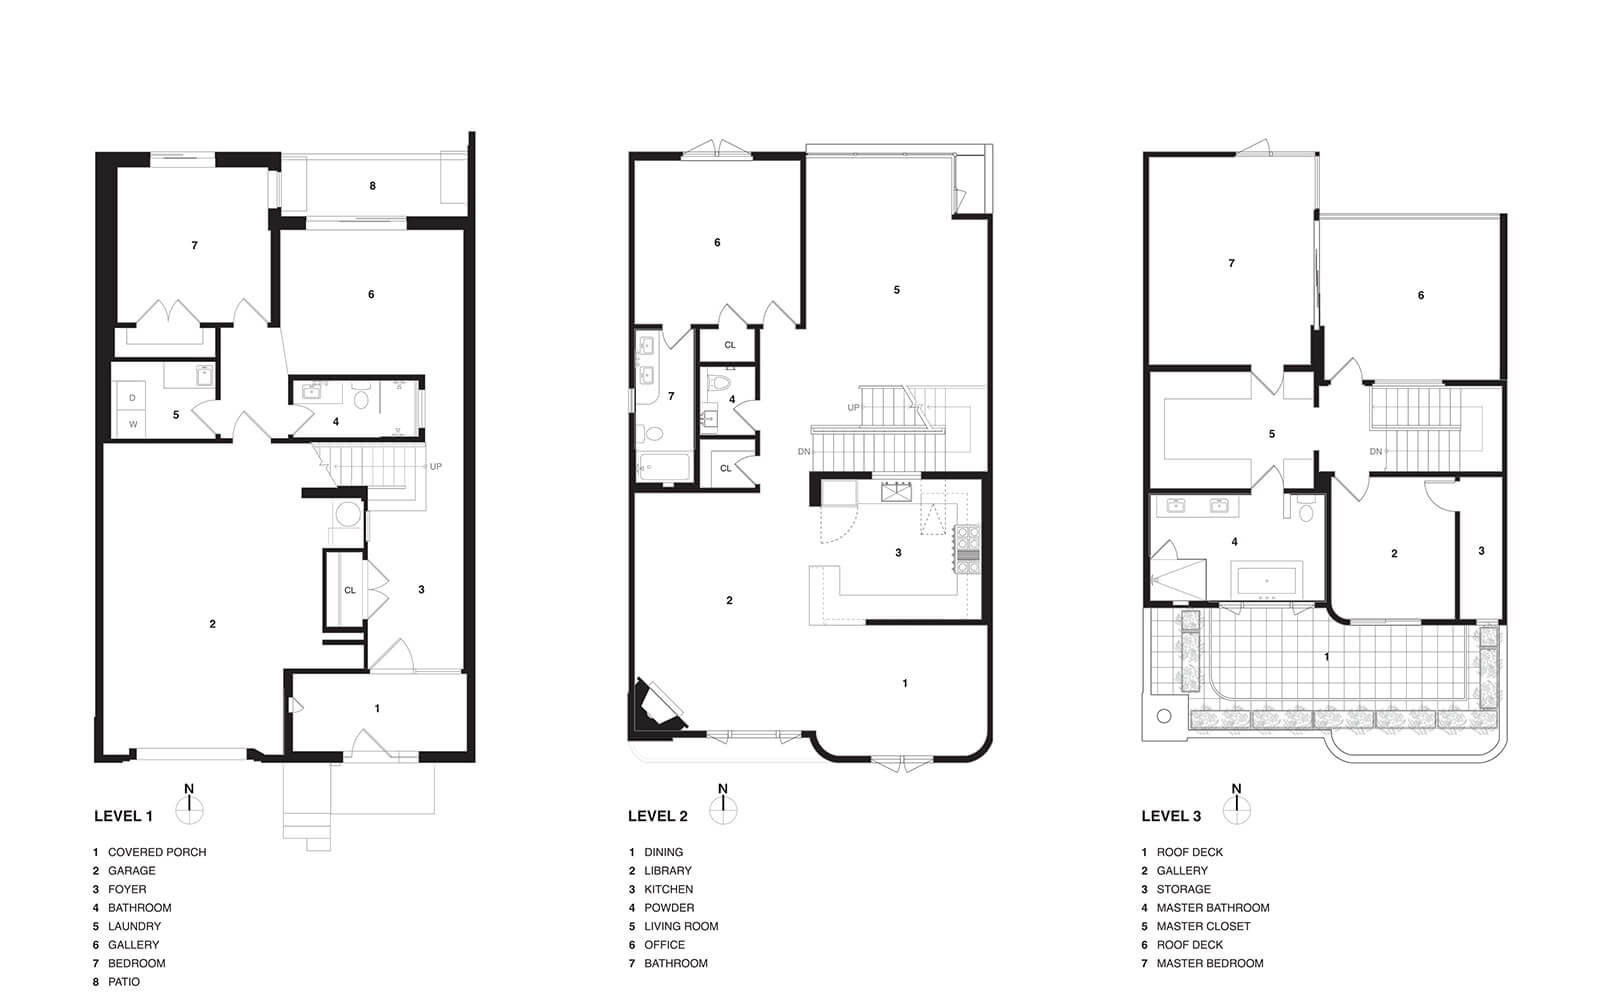 studio vara residential 21st street drawing plan